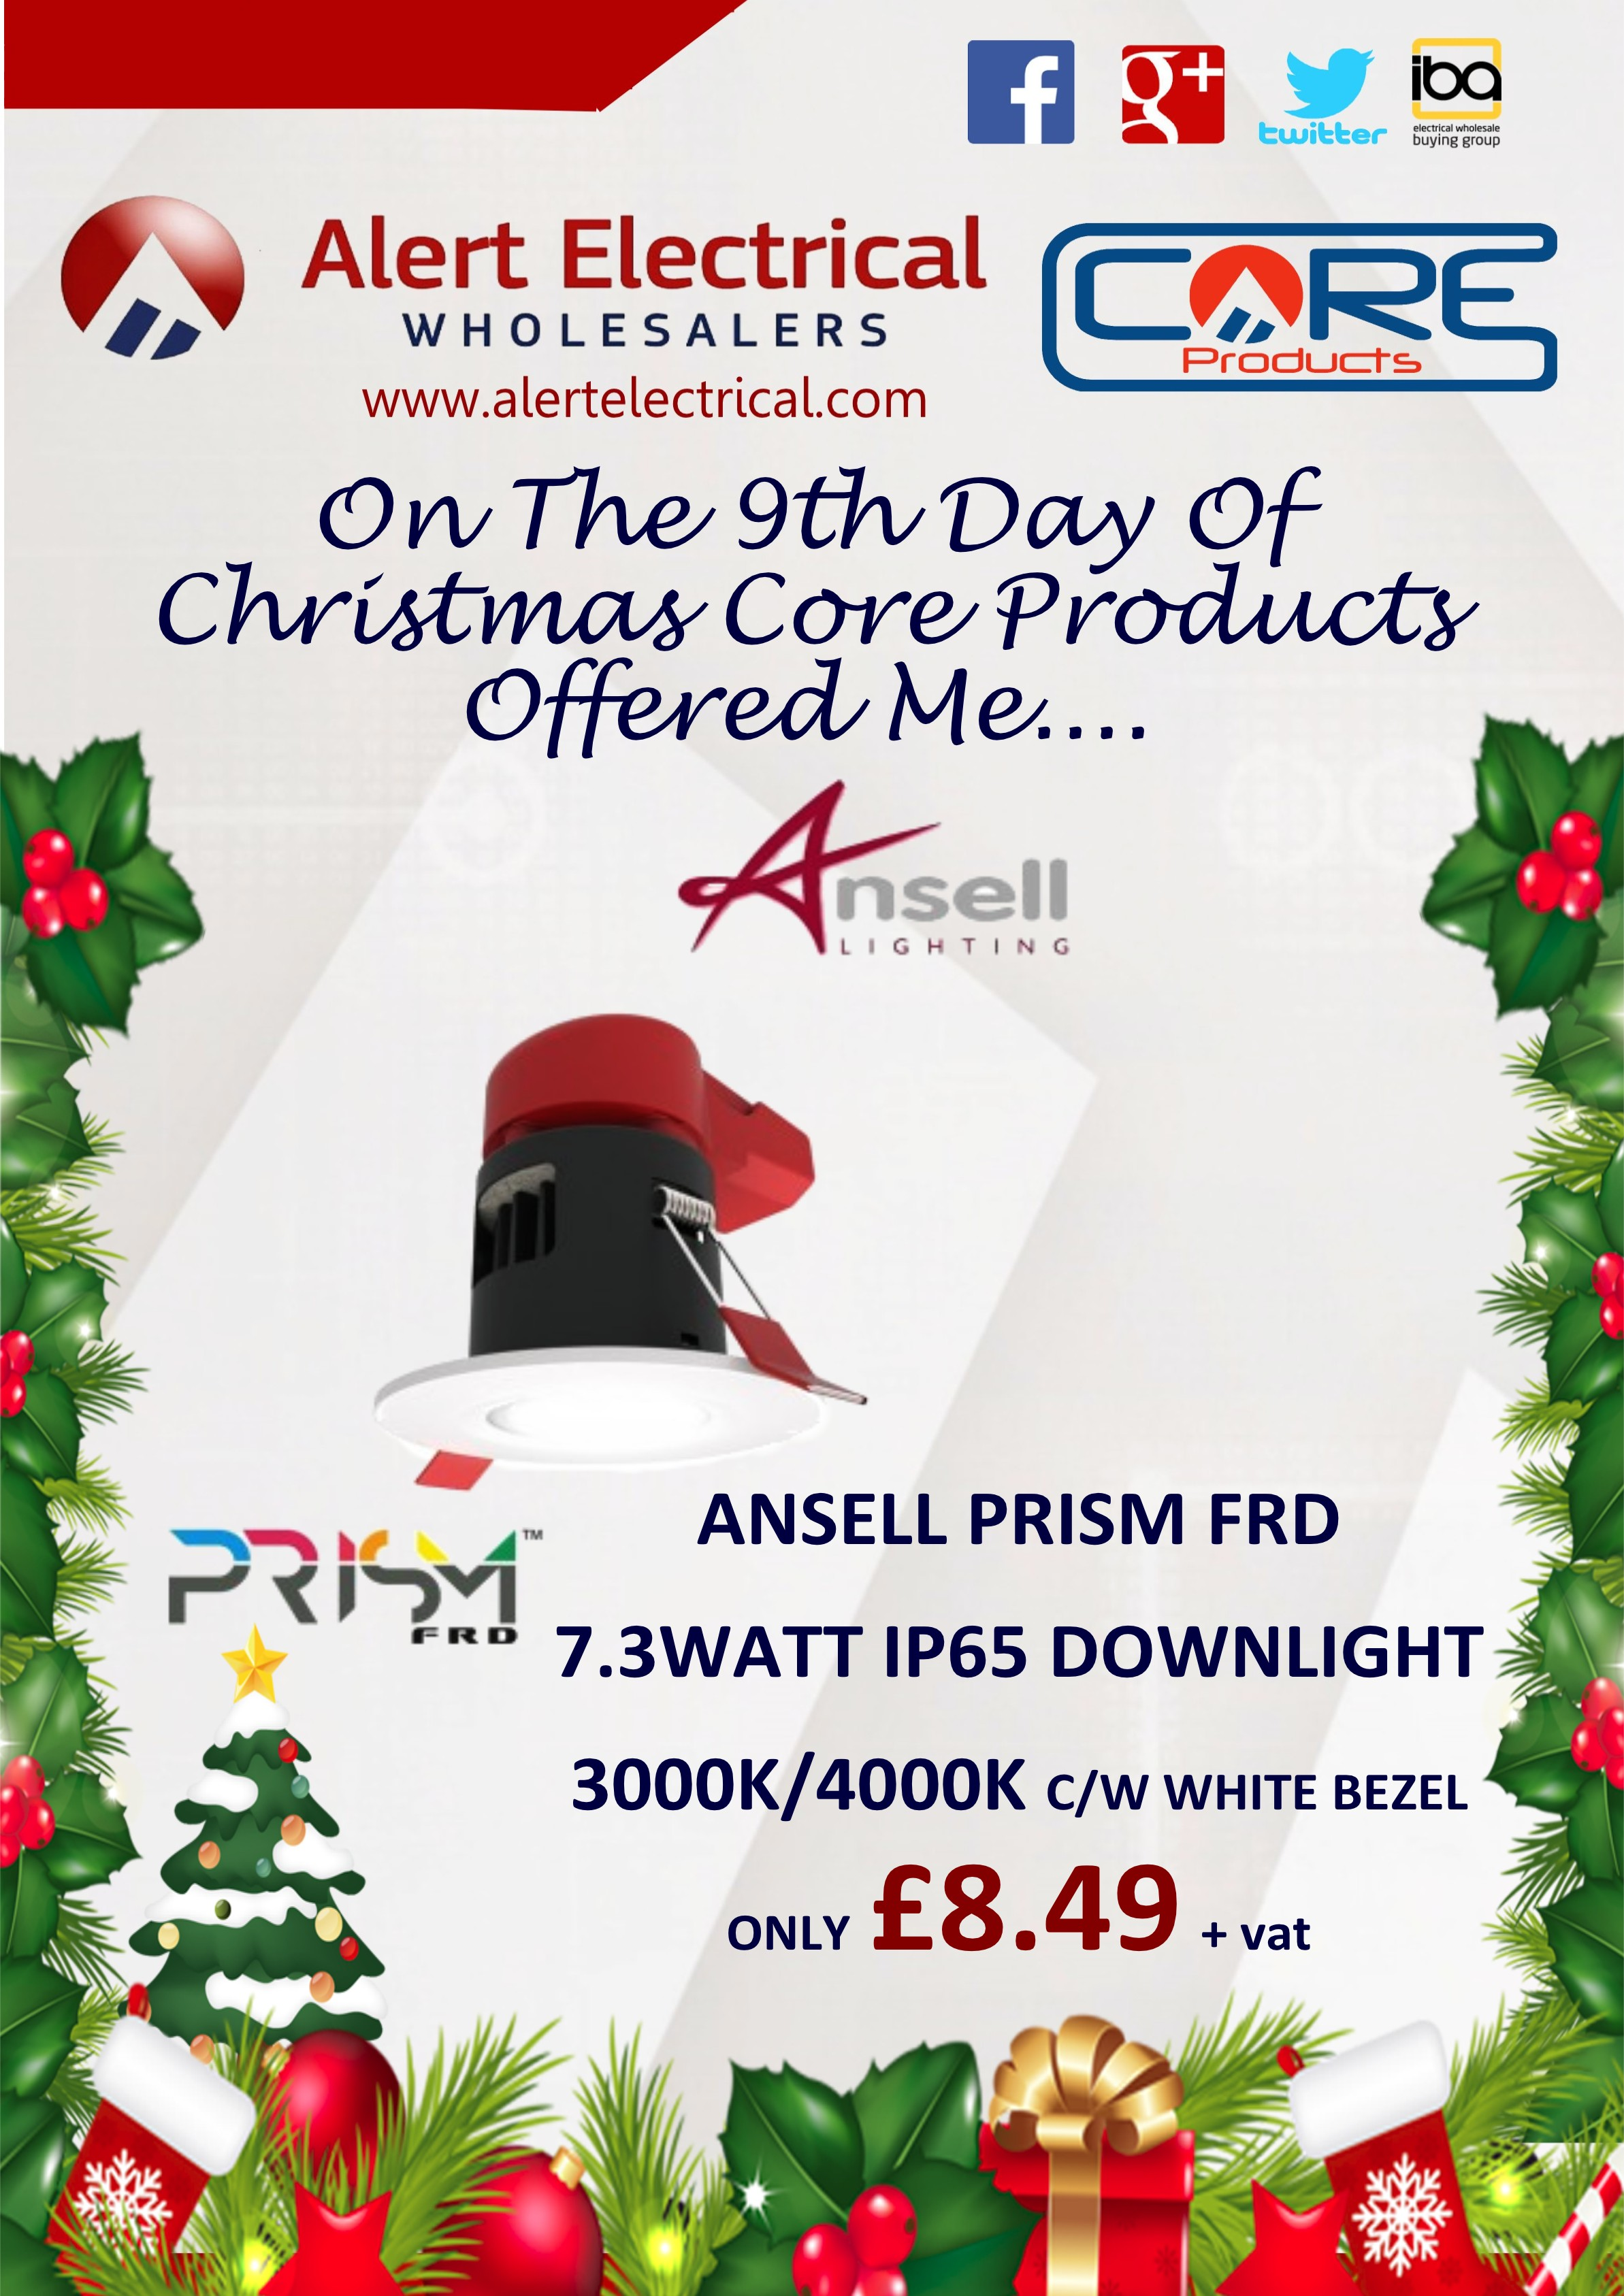 Alert Electrical Wholesalers 12 Days of Christmas. Day 9 Ansell Prism FRD IP65 LED Downlights